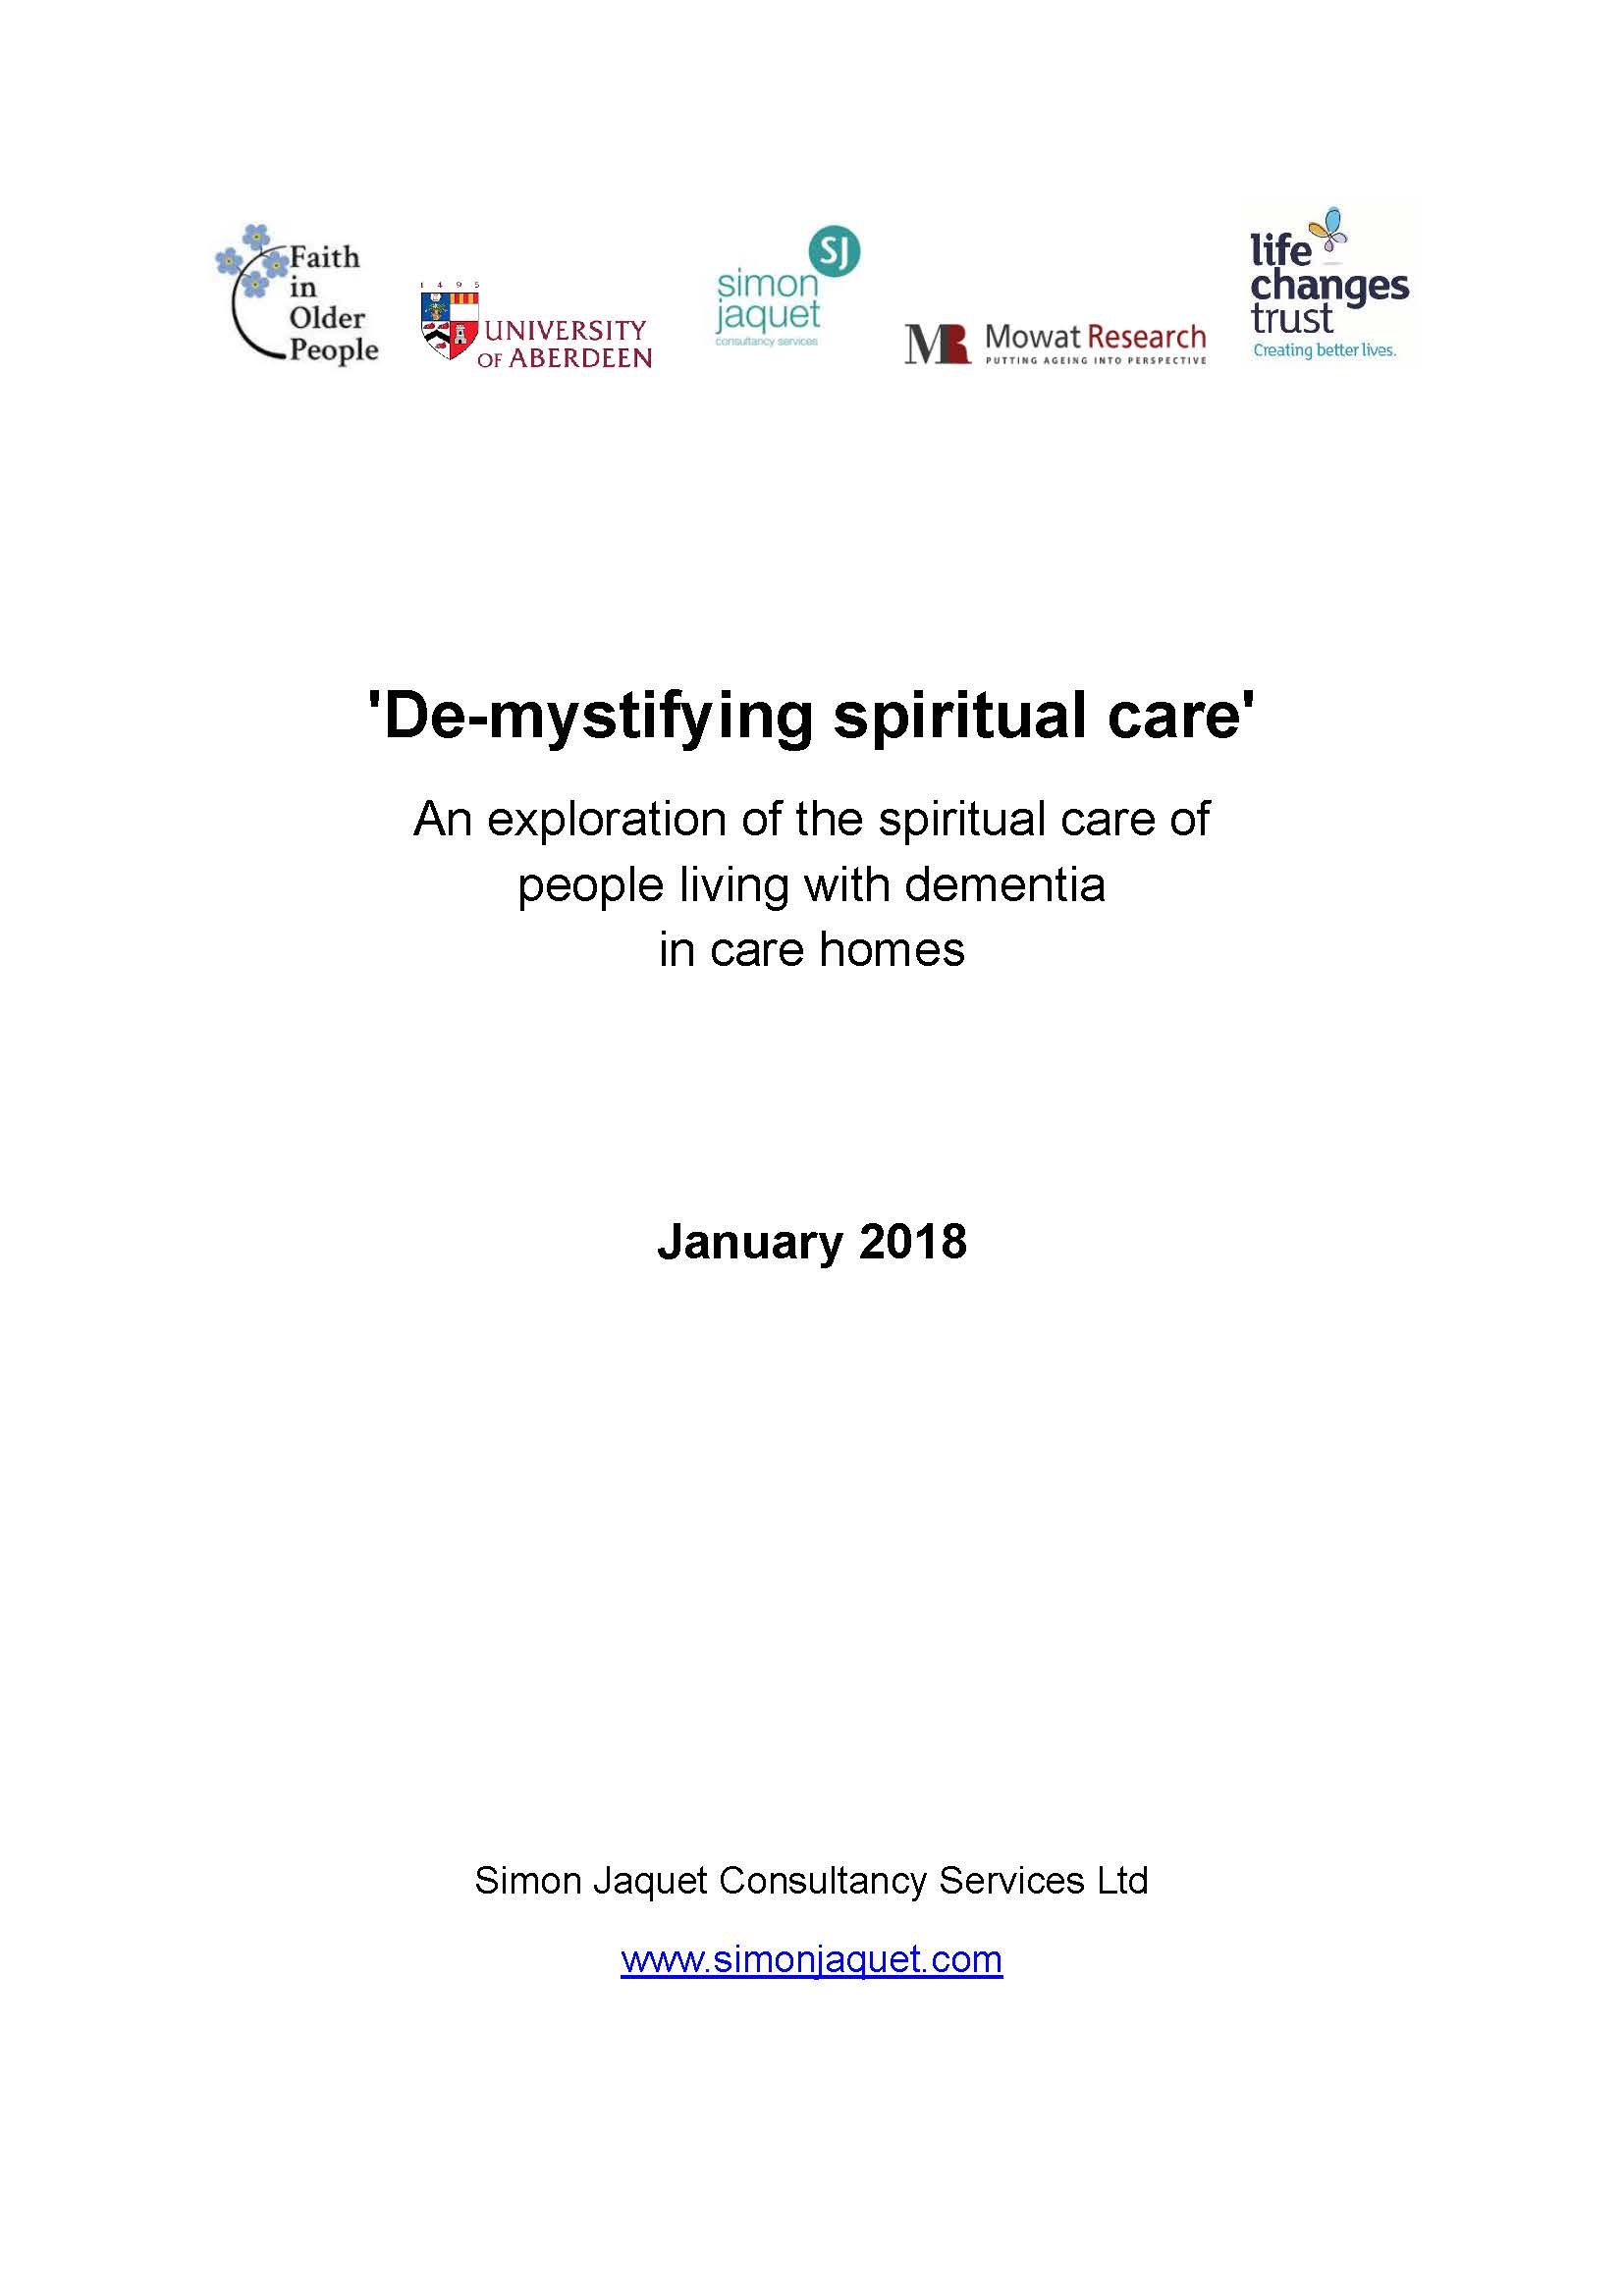 De-mystifying Spiritual Care